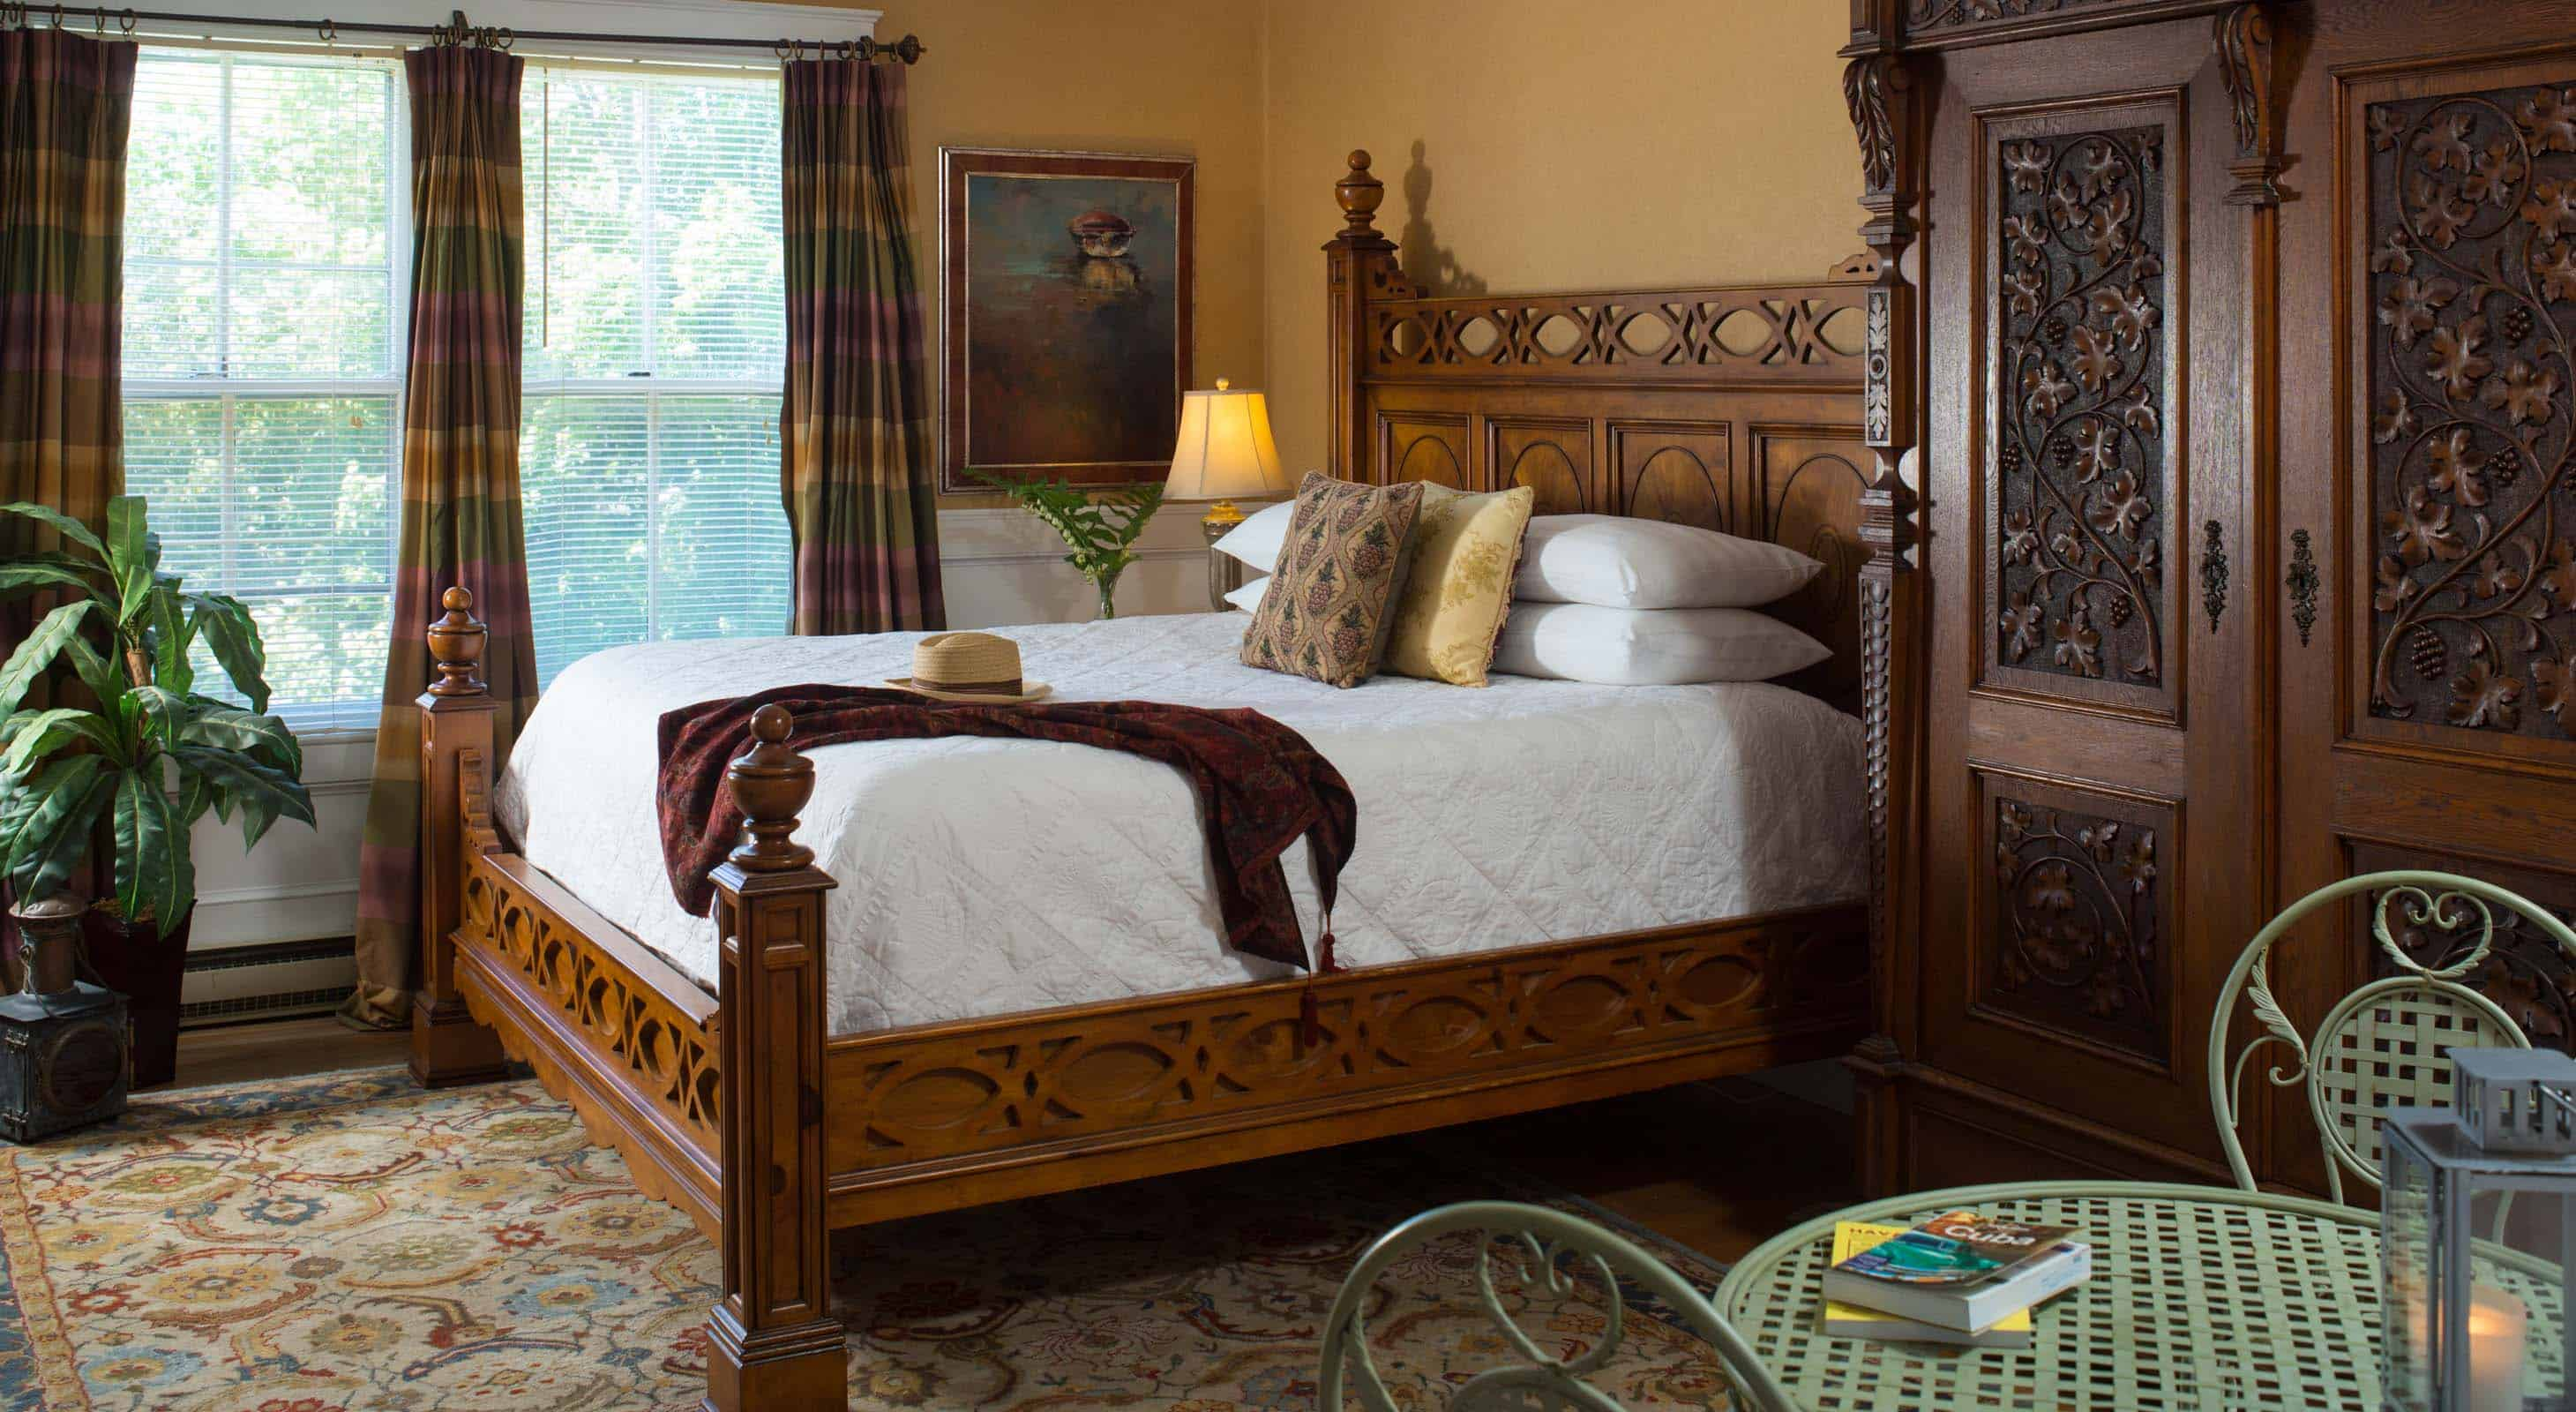 King size bed in a room with a large wardrobe and two windows